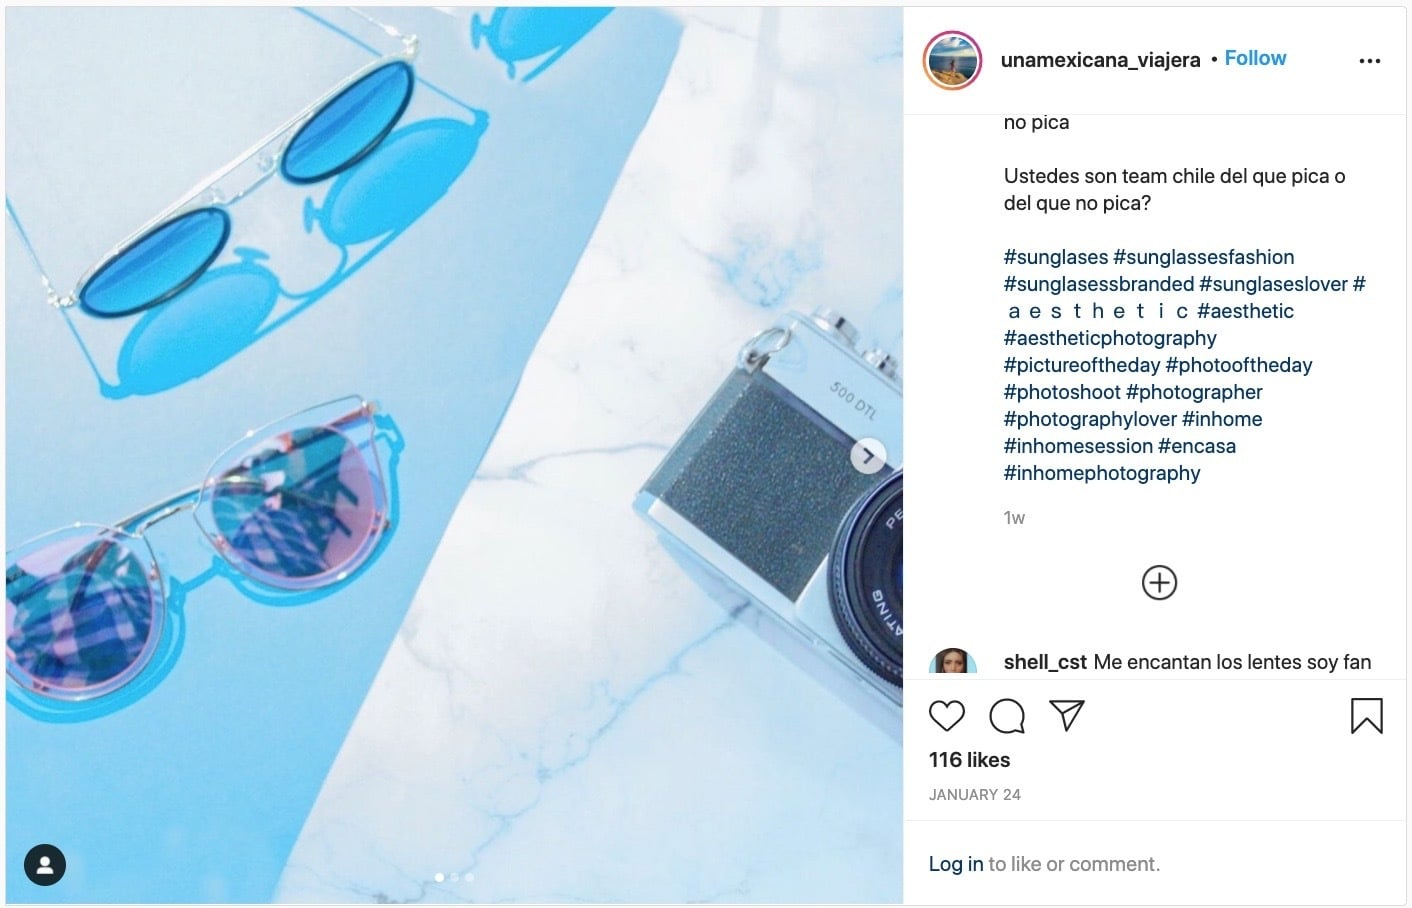 Instagram post with a photo of sunglasses and a camera with the hashtag #photography